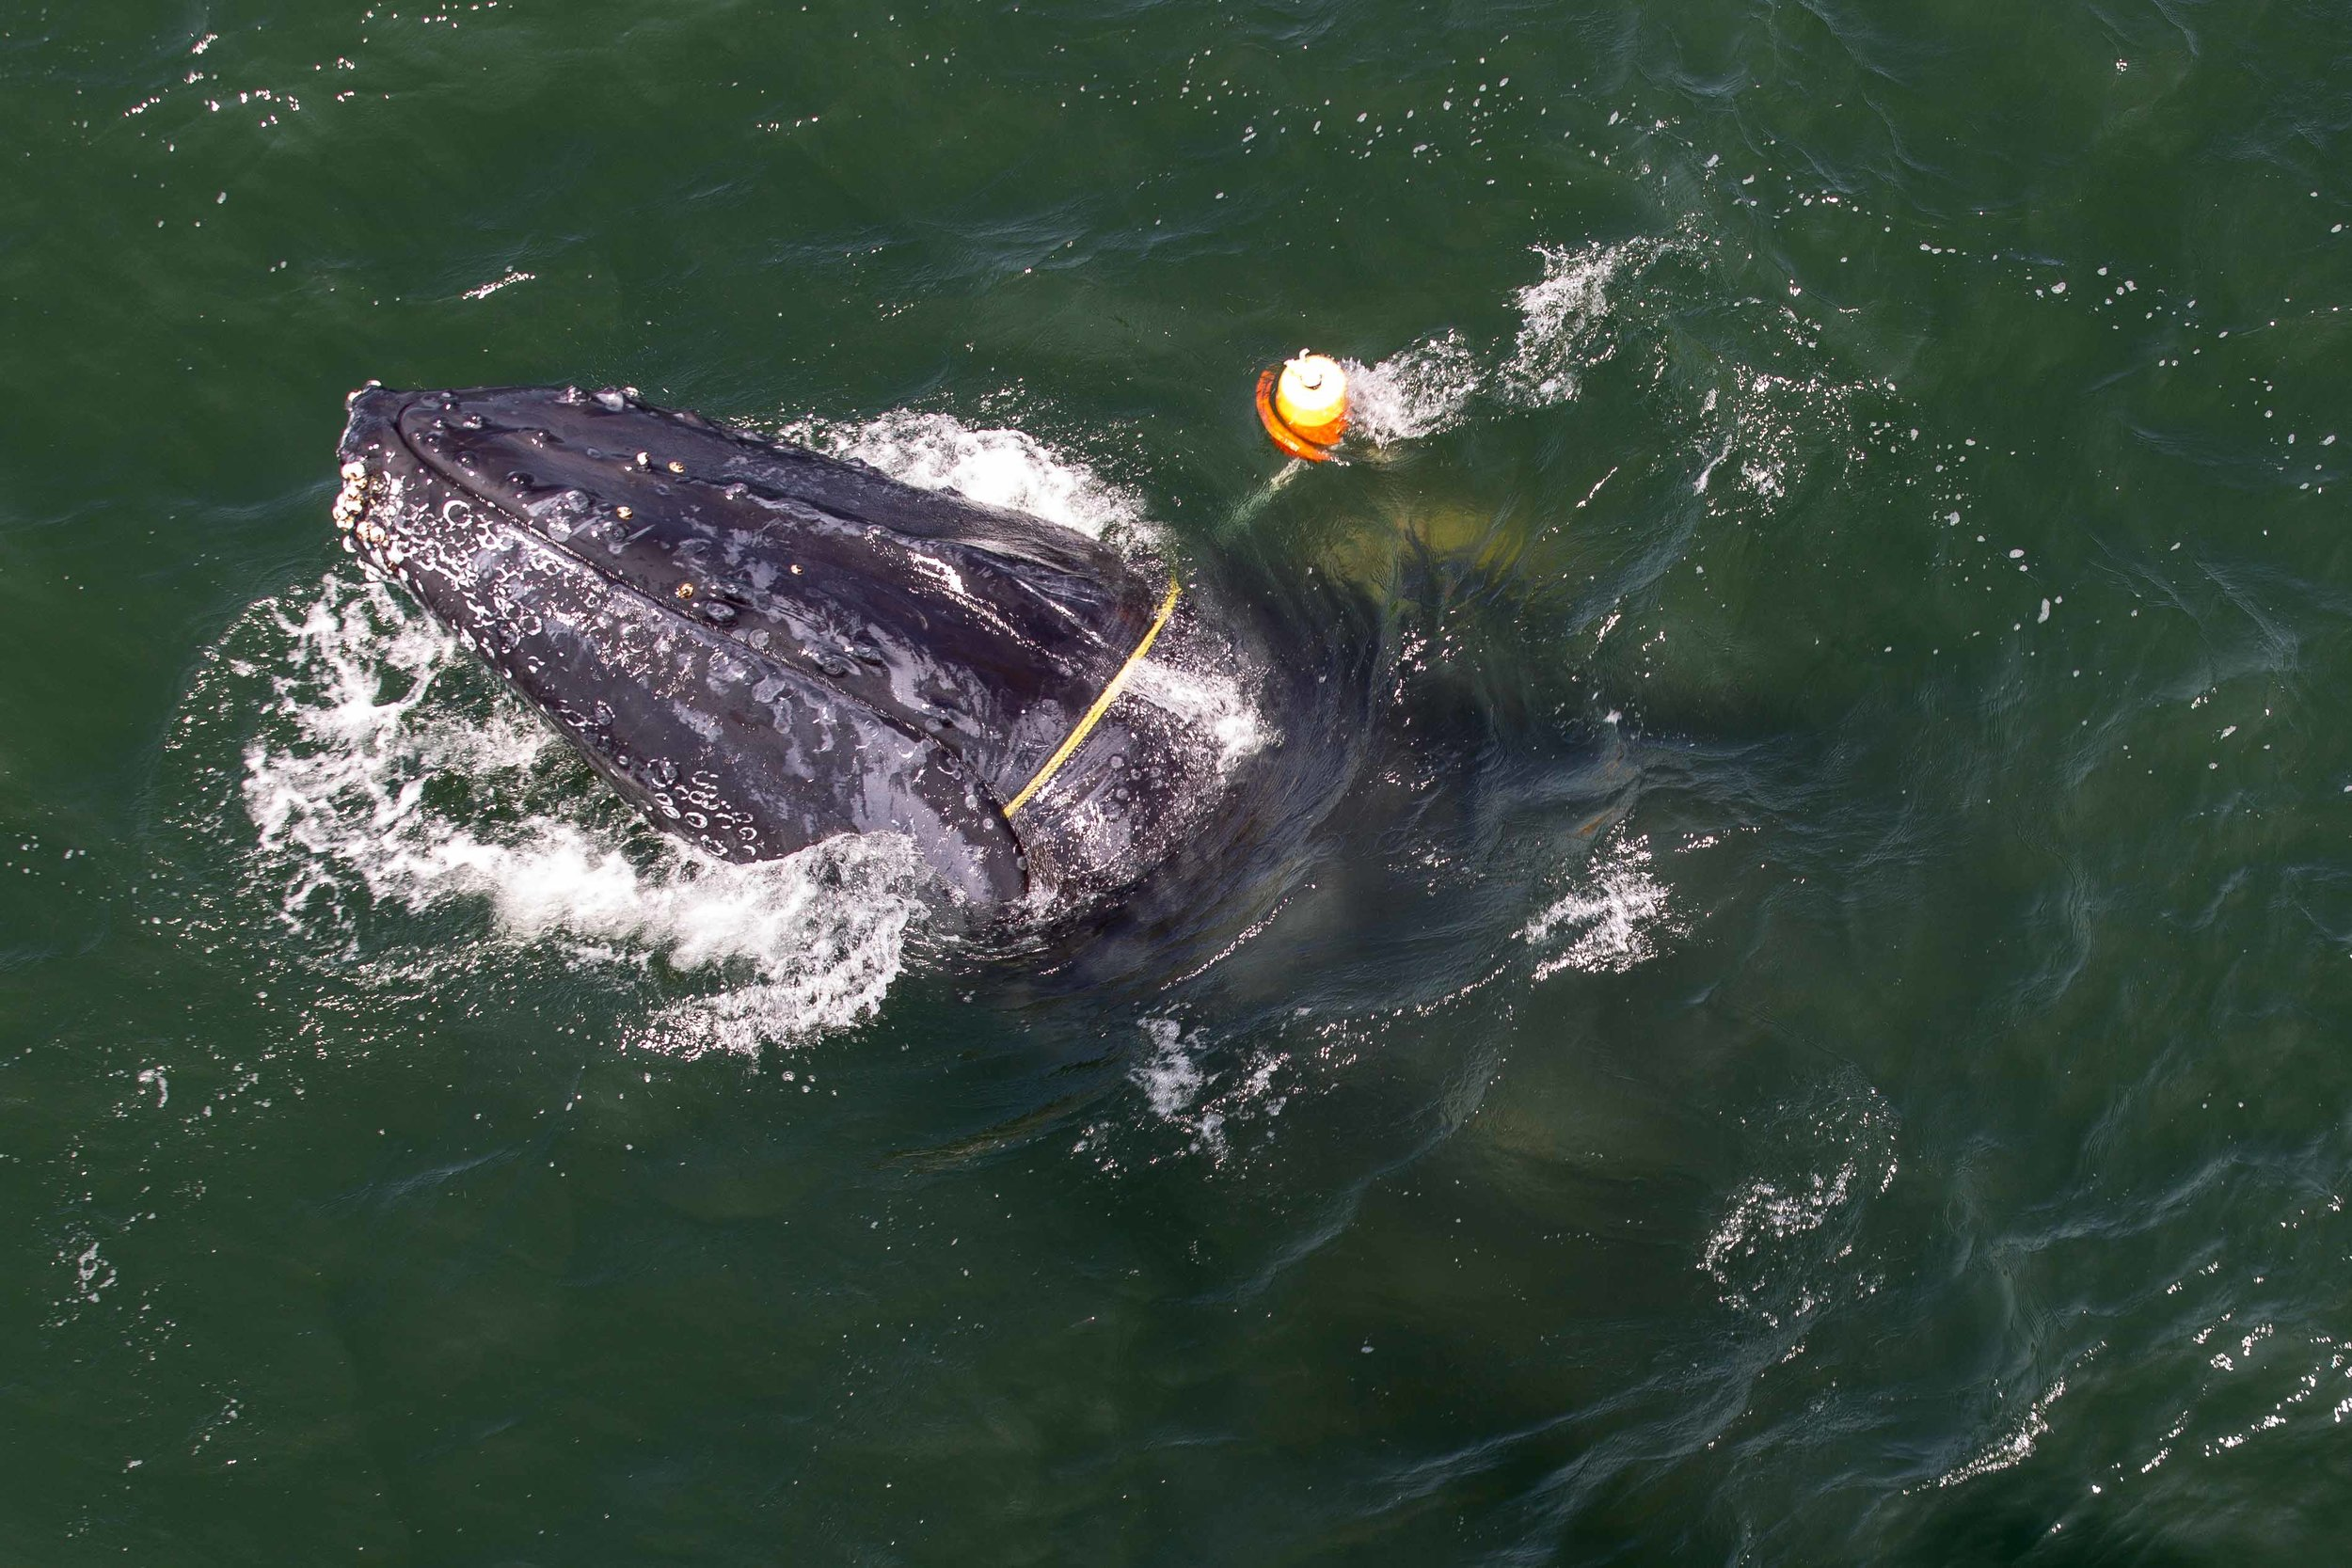 The humpback whale was severely entangled, with multiple lines of fishing gear weighing down its tail. With the help of local fishermen, disentanglement teams took some tension off the lines to help access them and cut the whale free. Photo credit: Bryant Anderson/NOAA Fisheries, taken under NOAA Fisheries MMHSRP Permit #18786-01